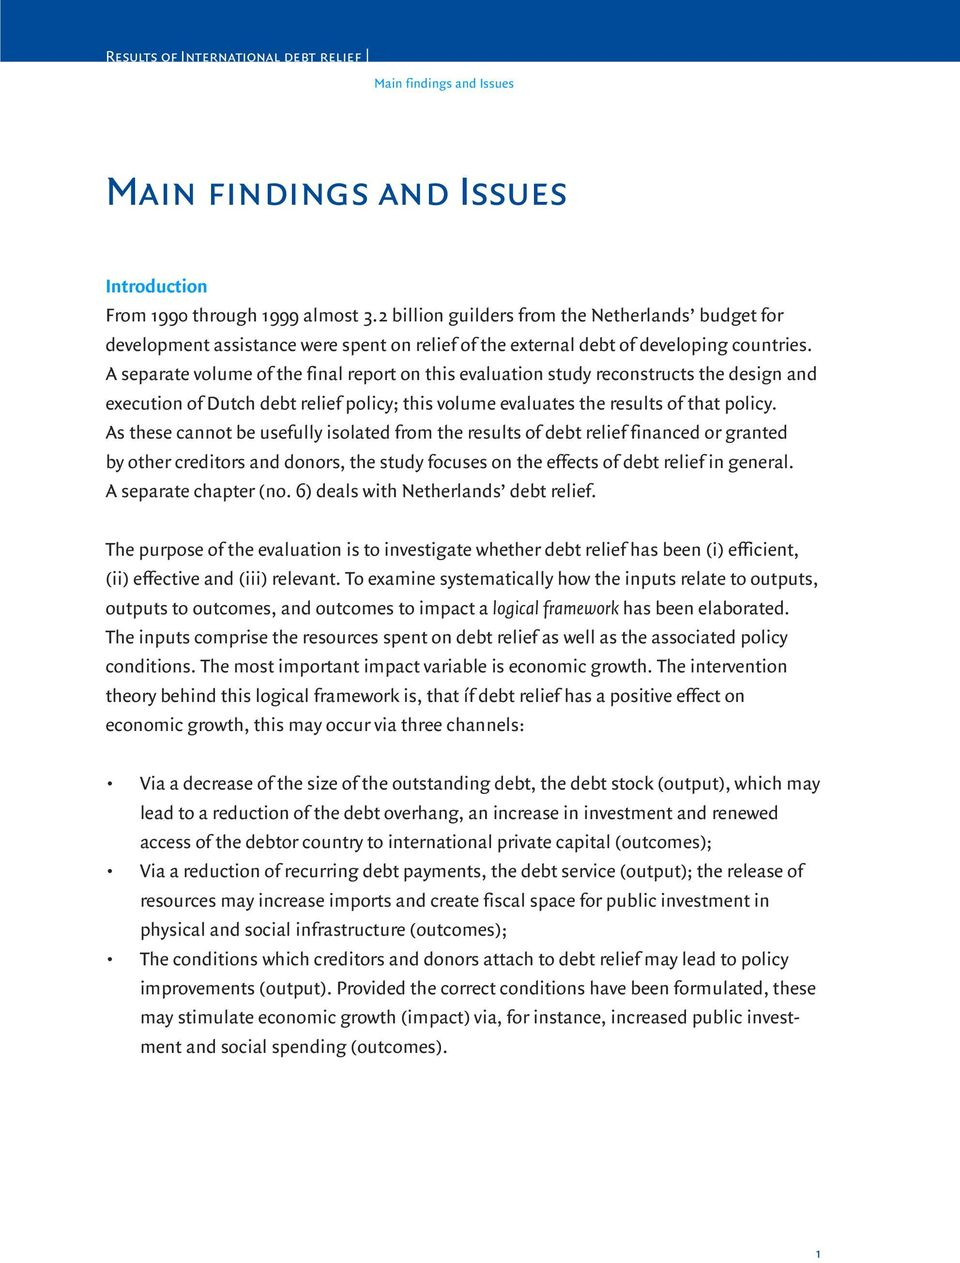 A separate volume of the final report on this evaluation study reconstructs the design and execution of Dutch debt relief policy; this volume evaluates the results of that policy.